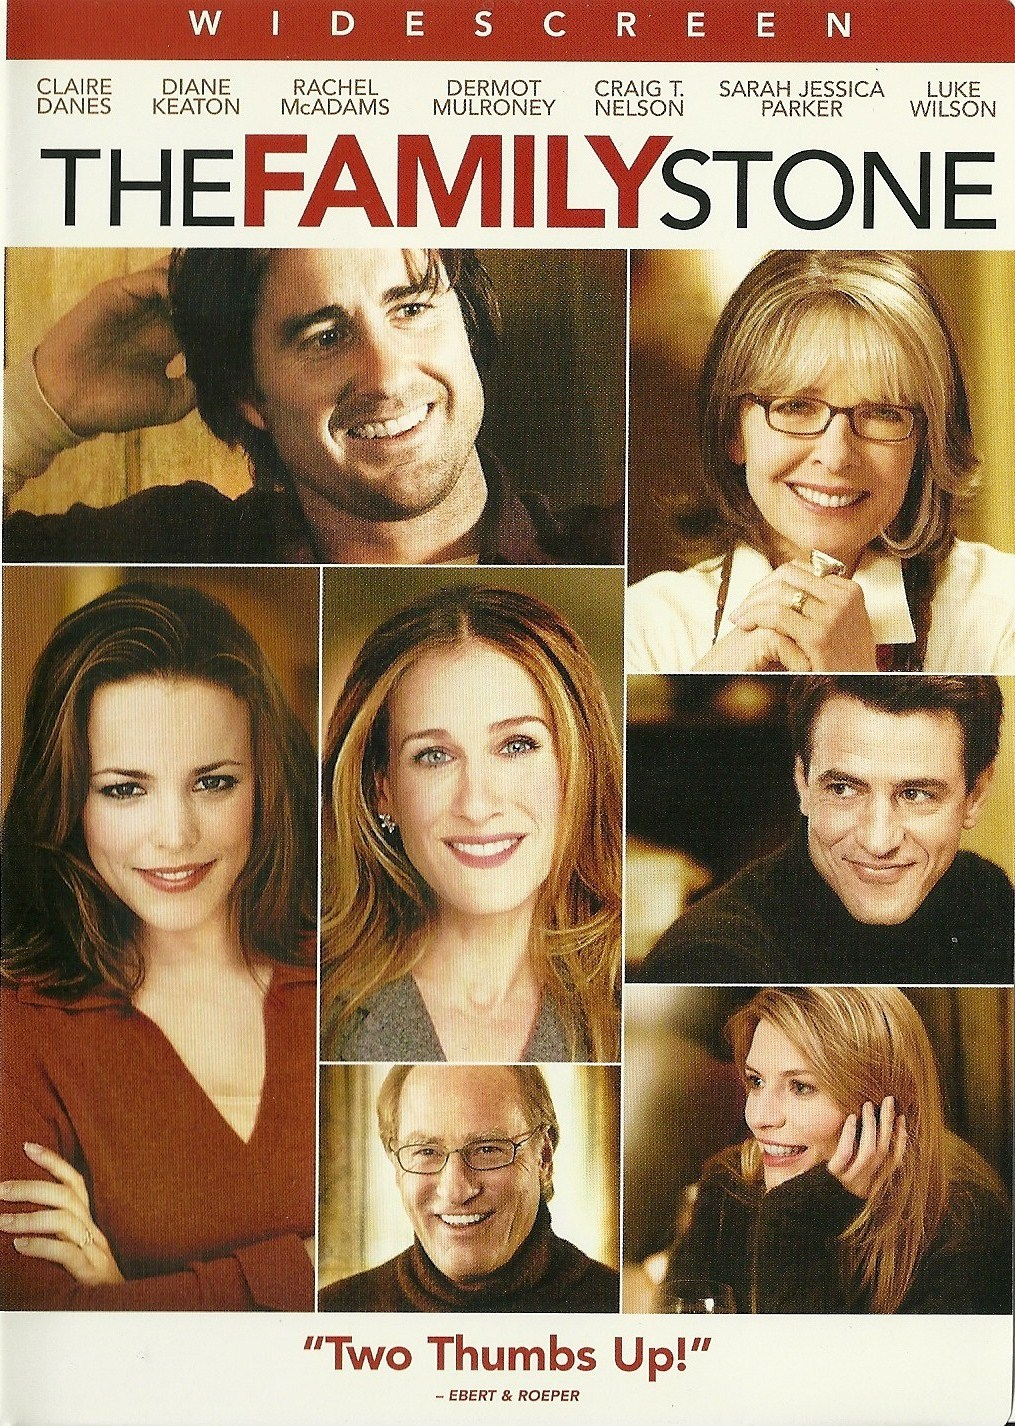 Primary image for The Family Stone DVD Claire Danes Diane Keaton Rachel McAdams Dermot Mulroney